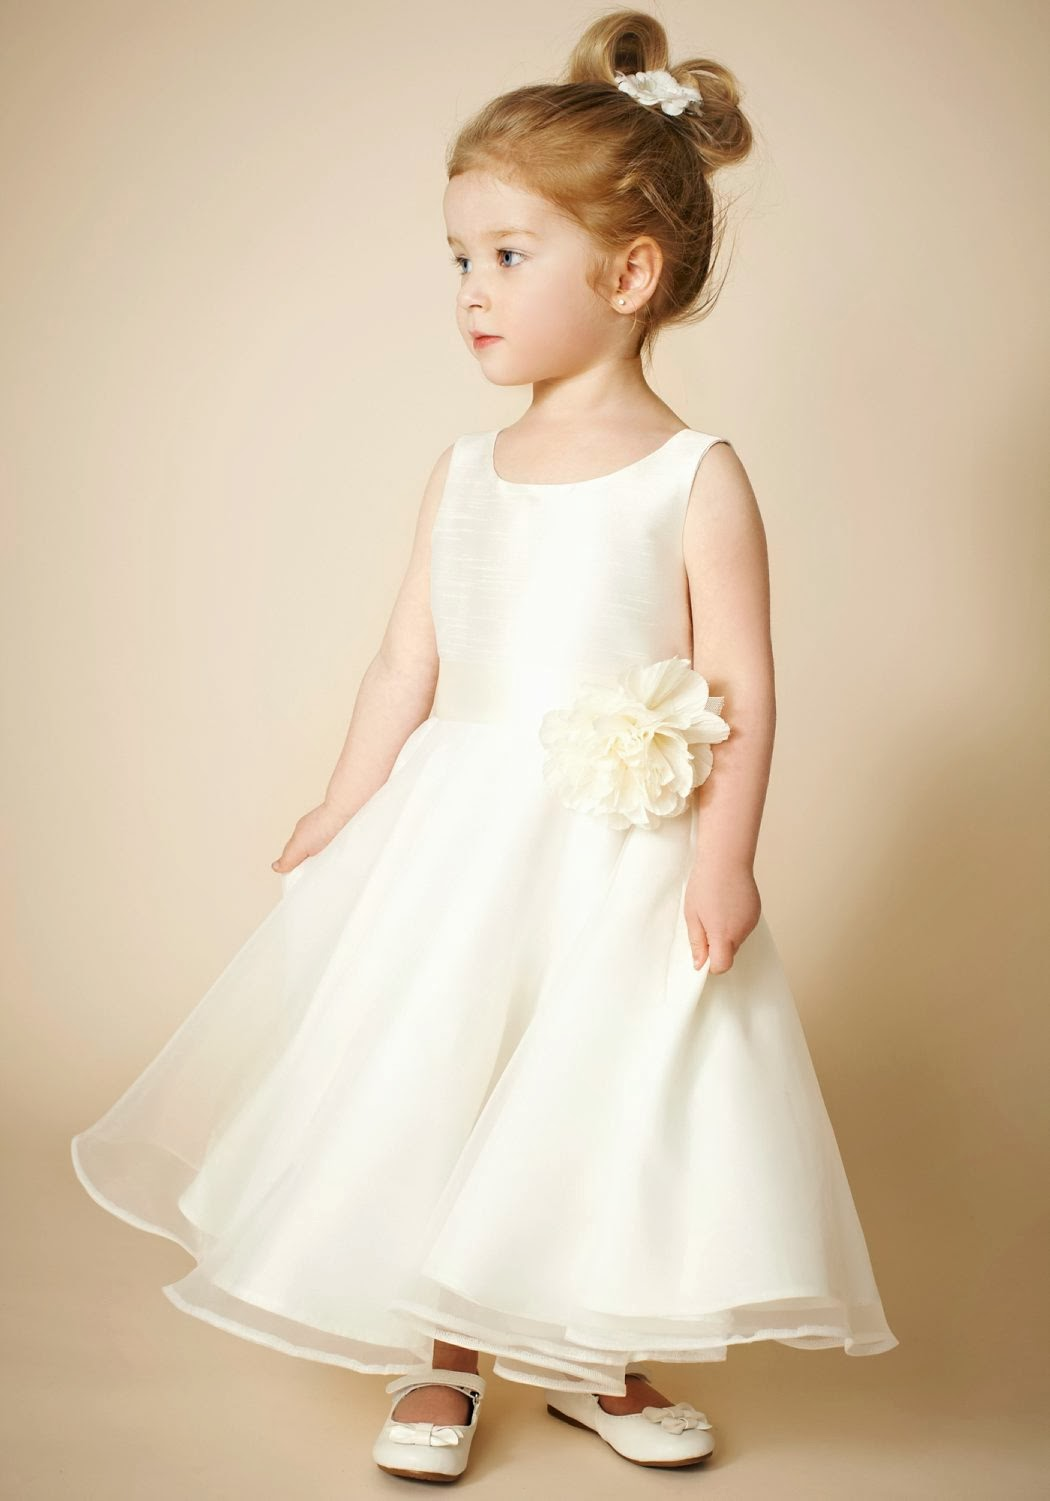 Wedding Dresses For Childrens In : Childrens wedding gowns ocodea